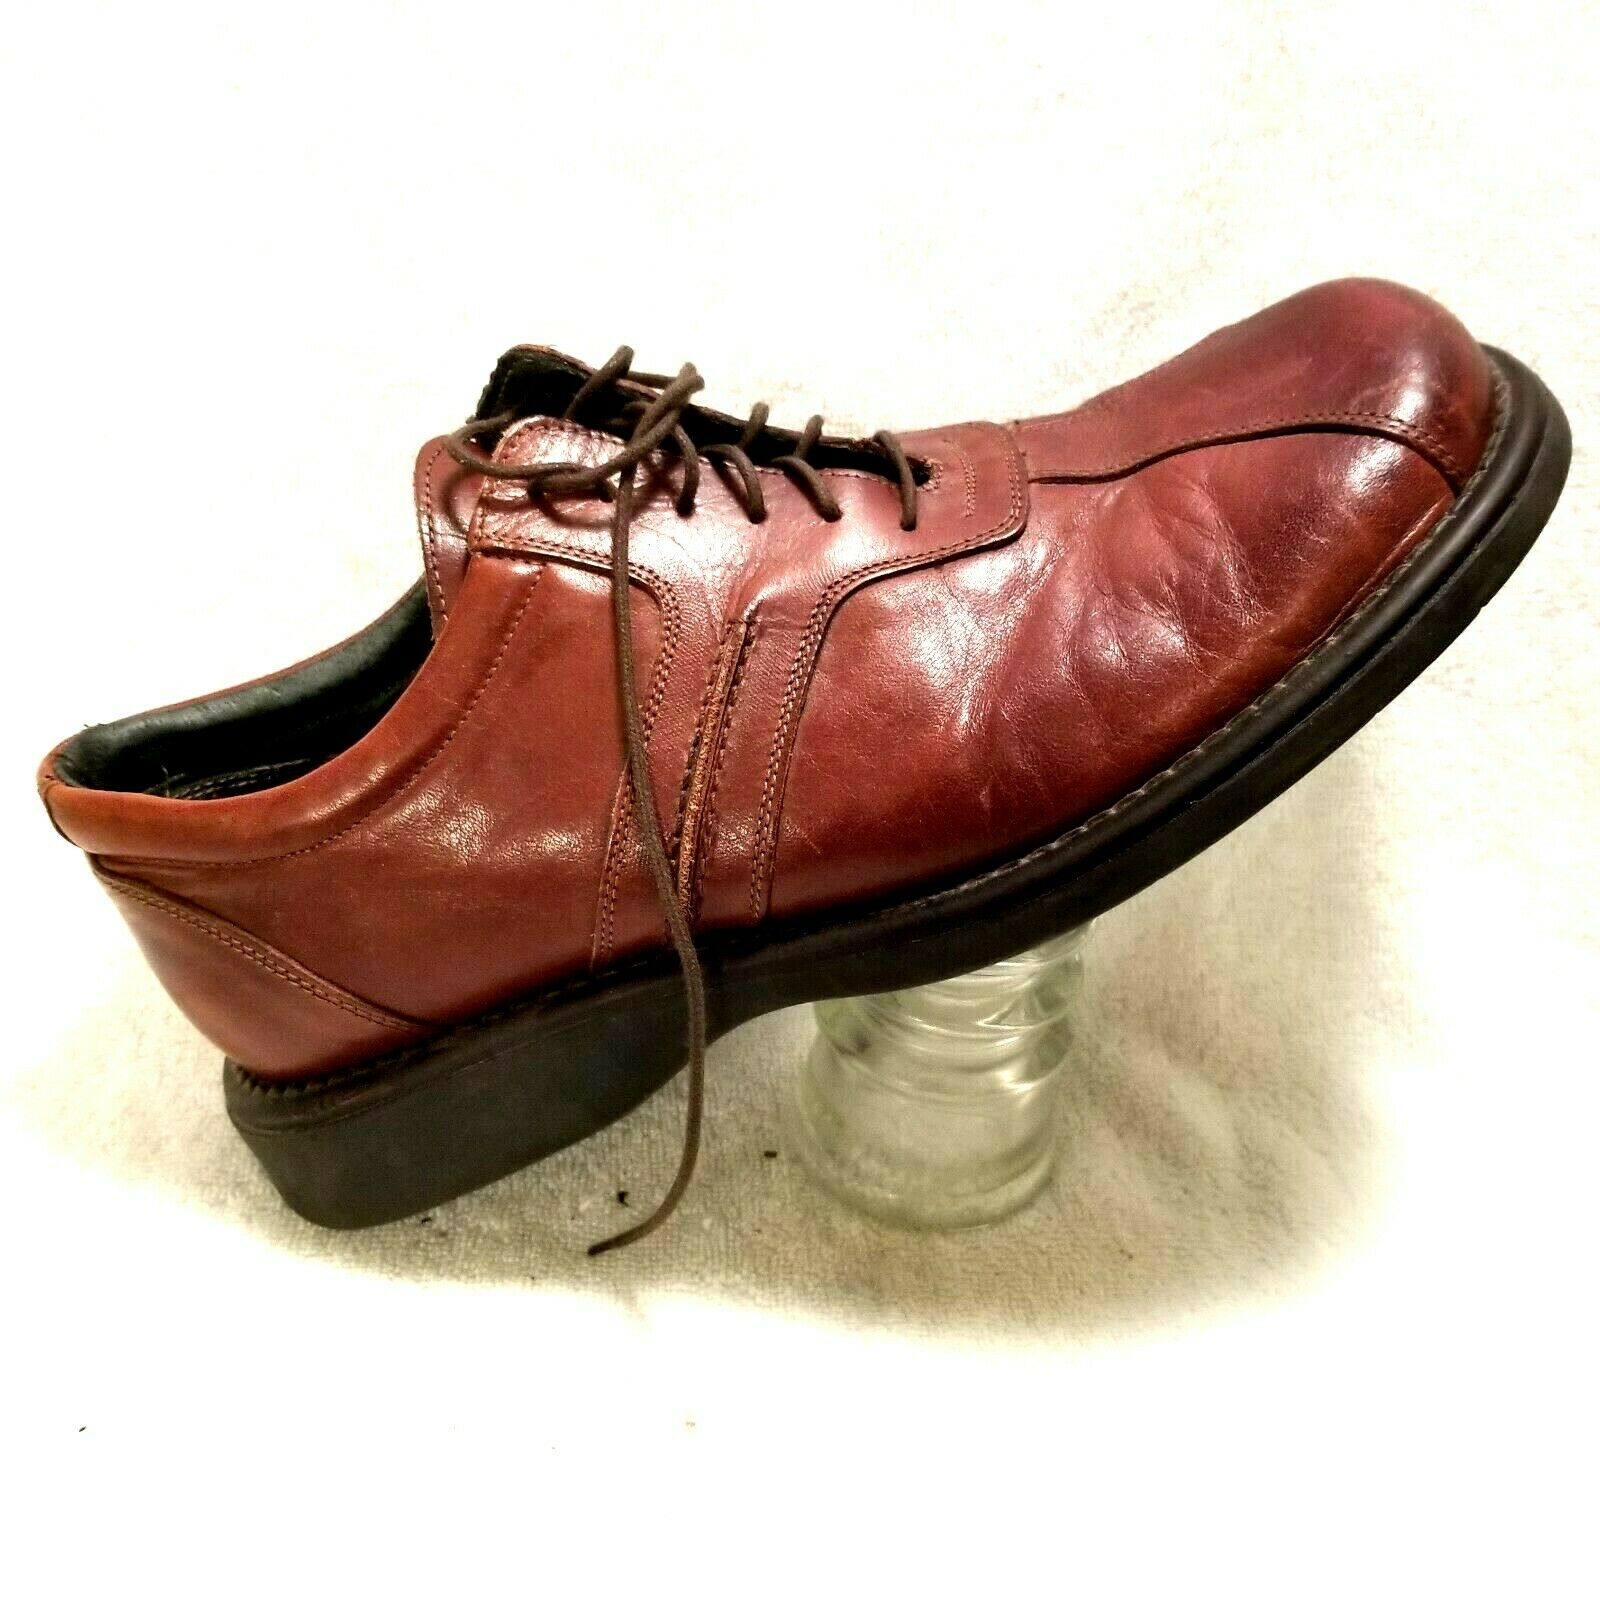 Kenneth Cole Reaction Mens Oxfords sz 10 M leather dress shoe made in ITALY